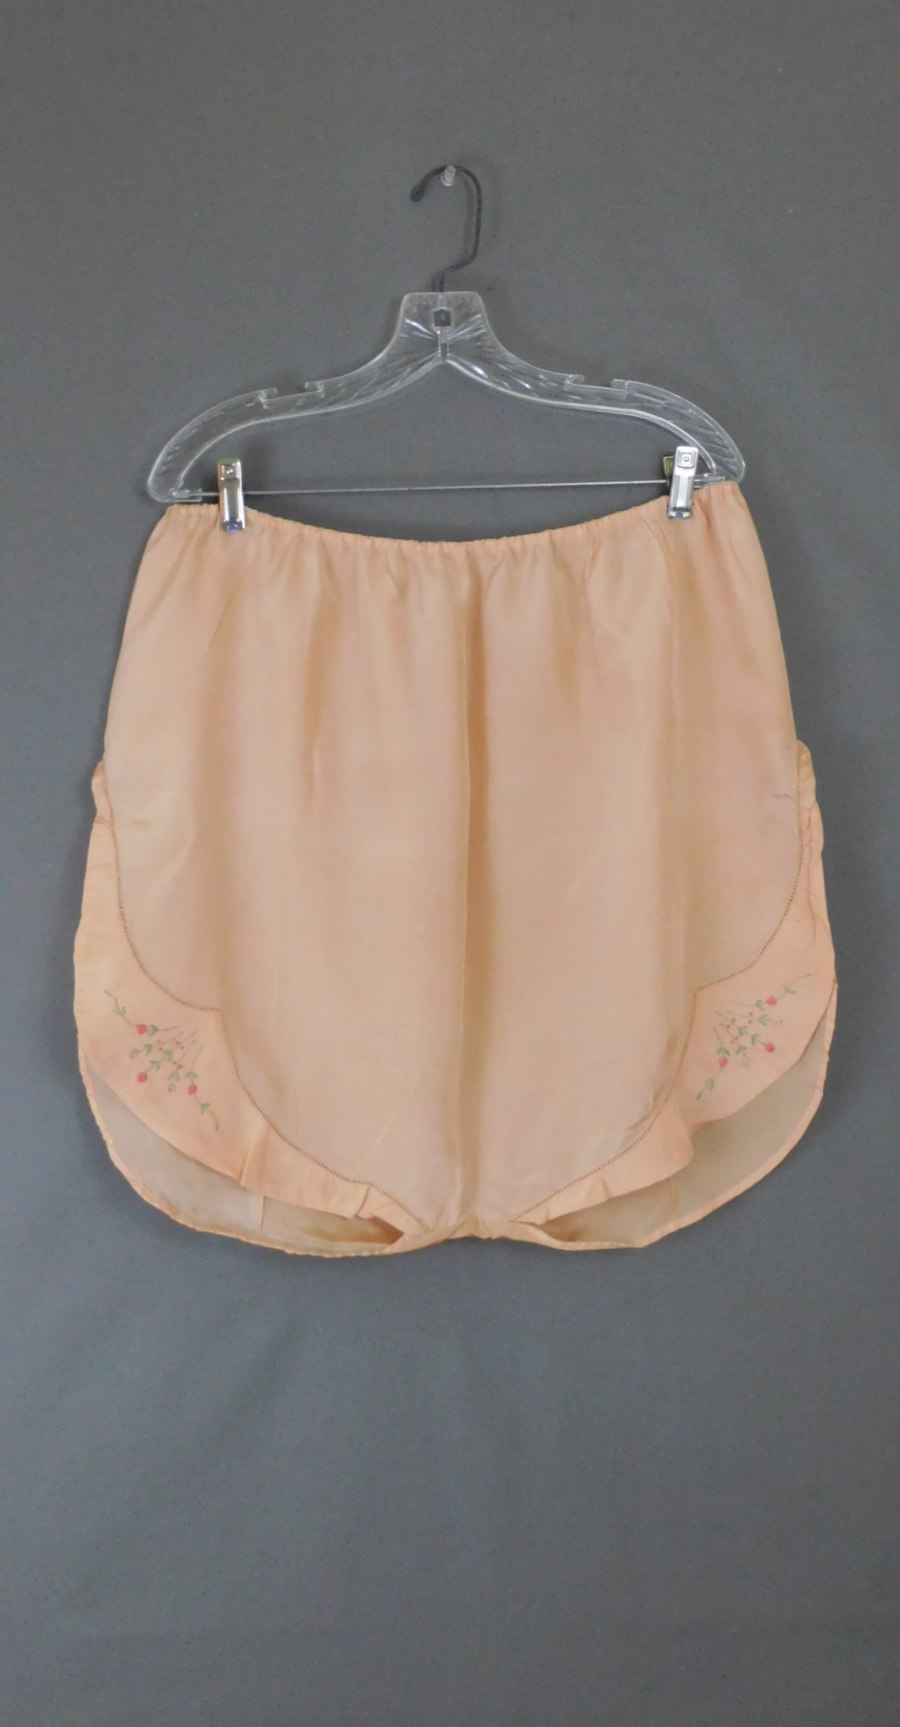 Vintage Peach Silk Panties, 32 to 36 inch waist, Embroidered 1920s, Rare Large size Lingerie